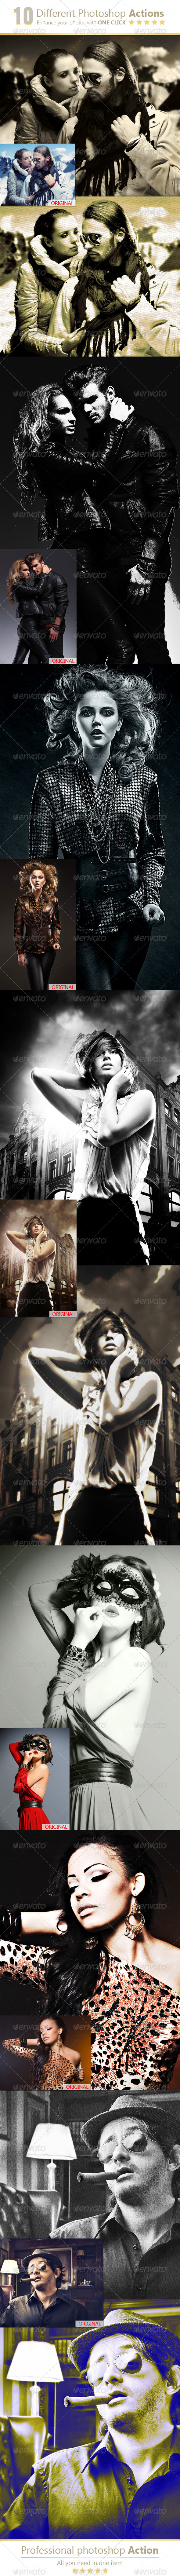 GraphicRiver 10 Different Photoshop Actions 8011791